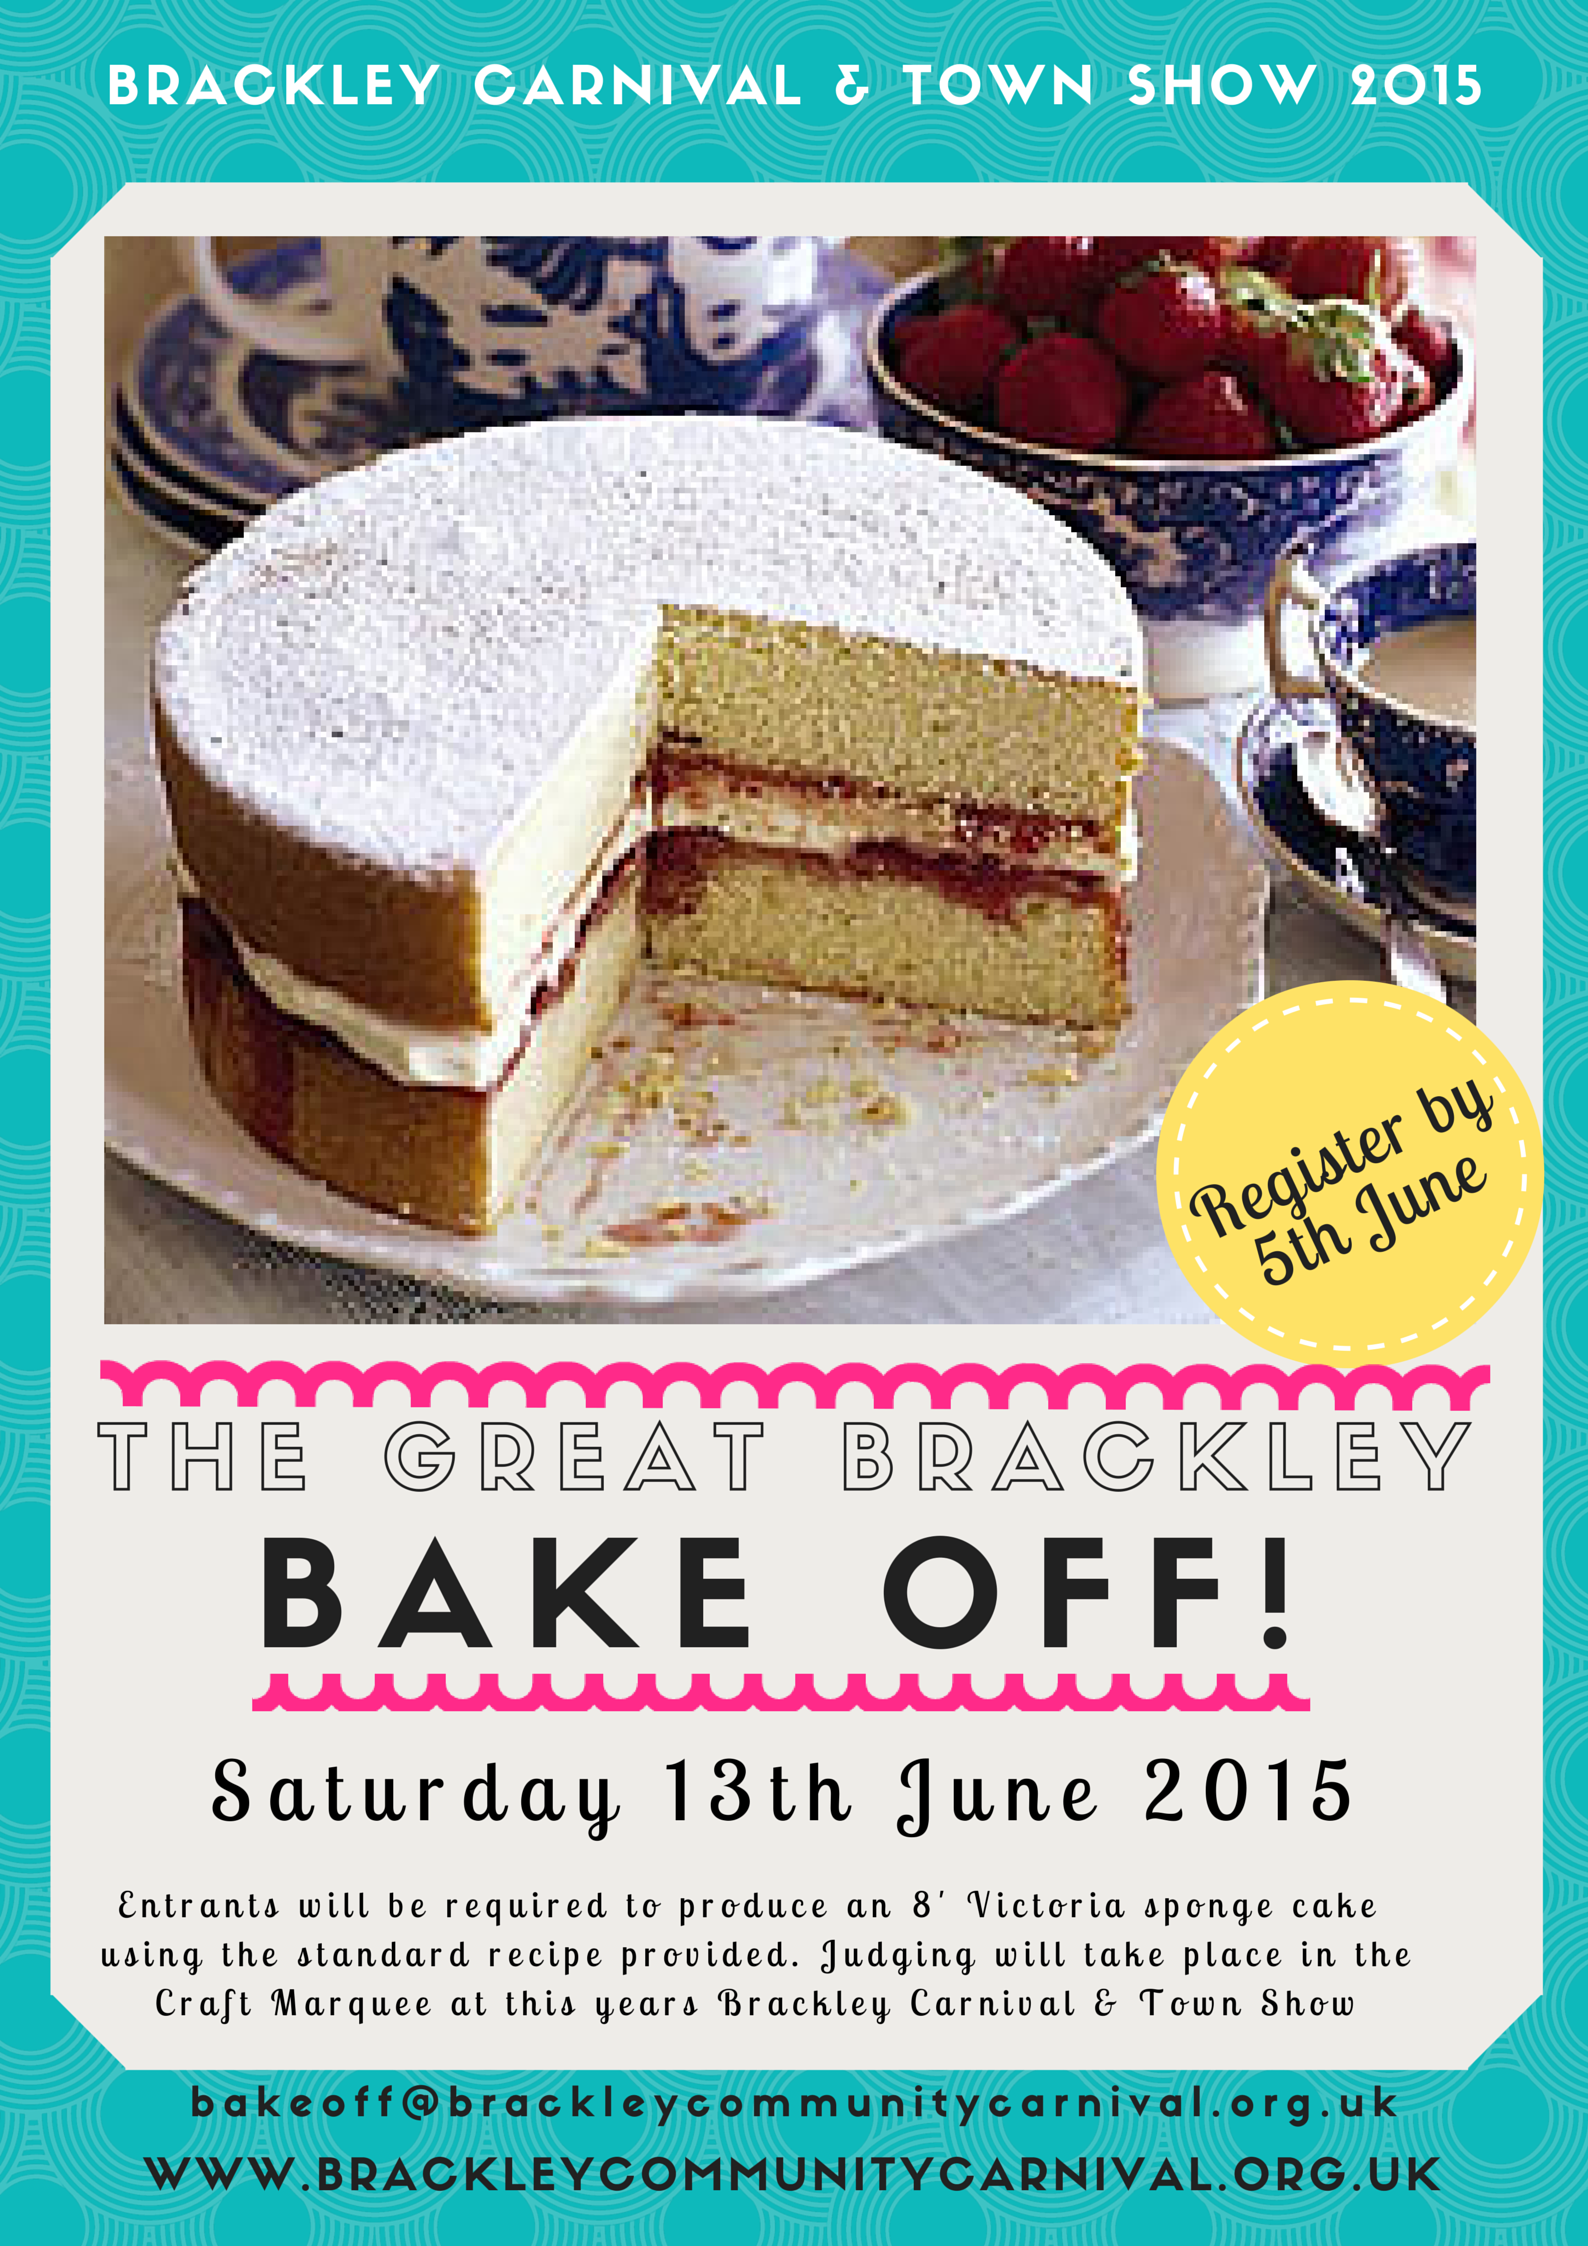 Brackley-Bake-Off-poster